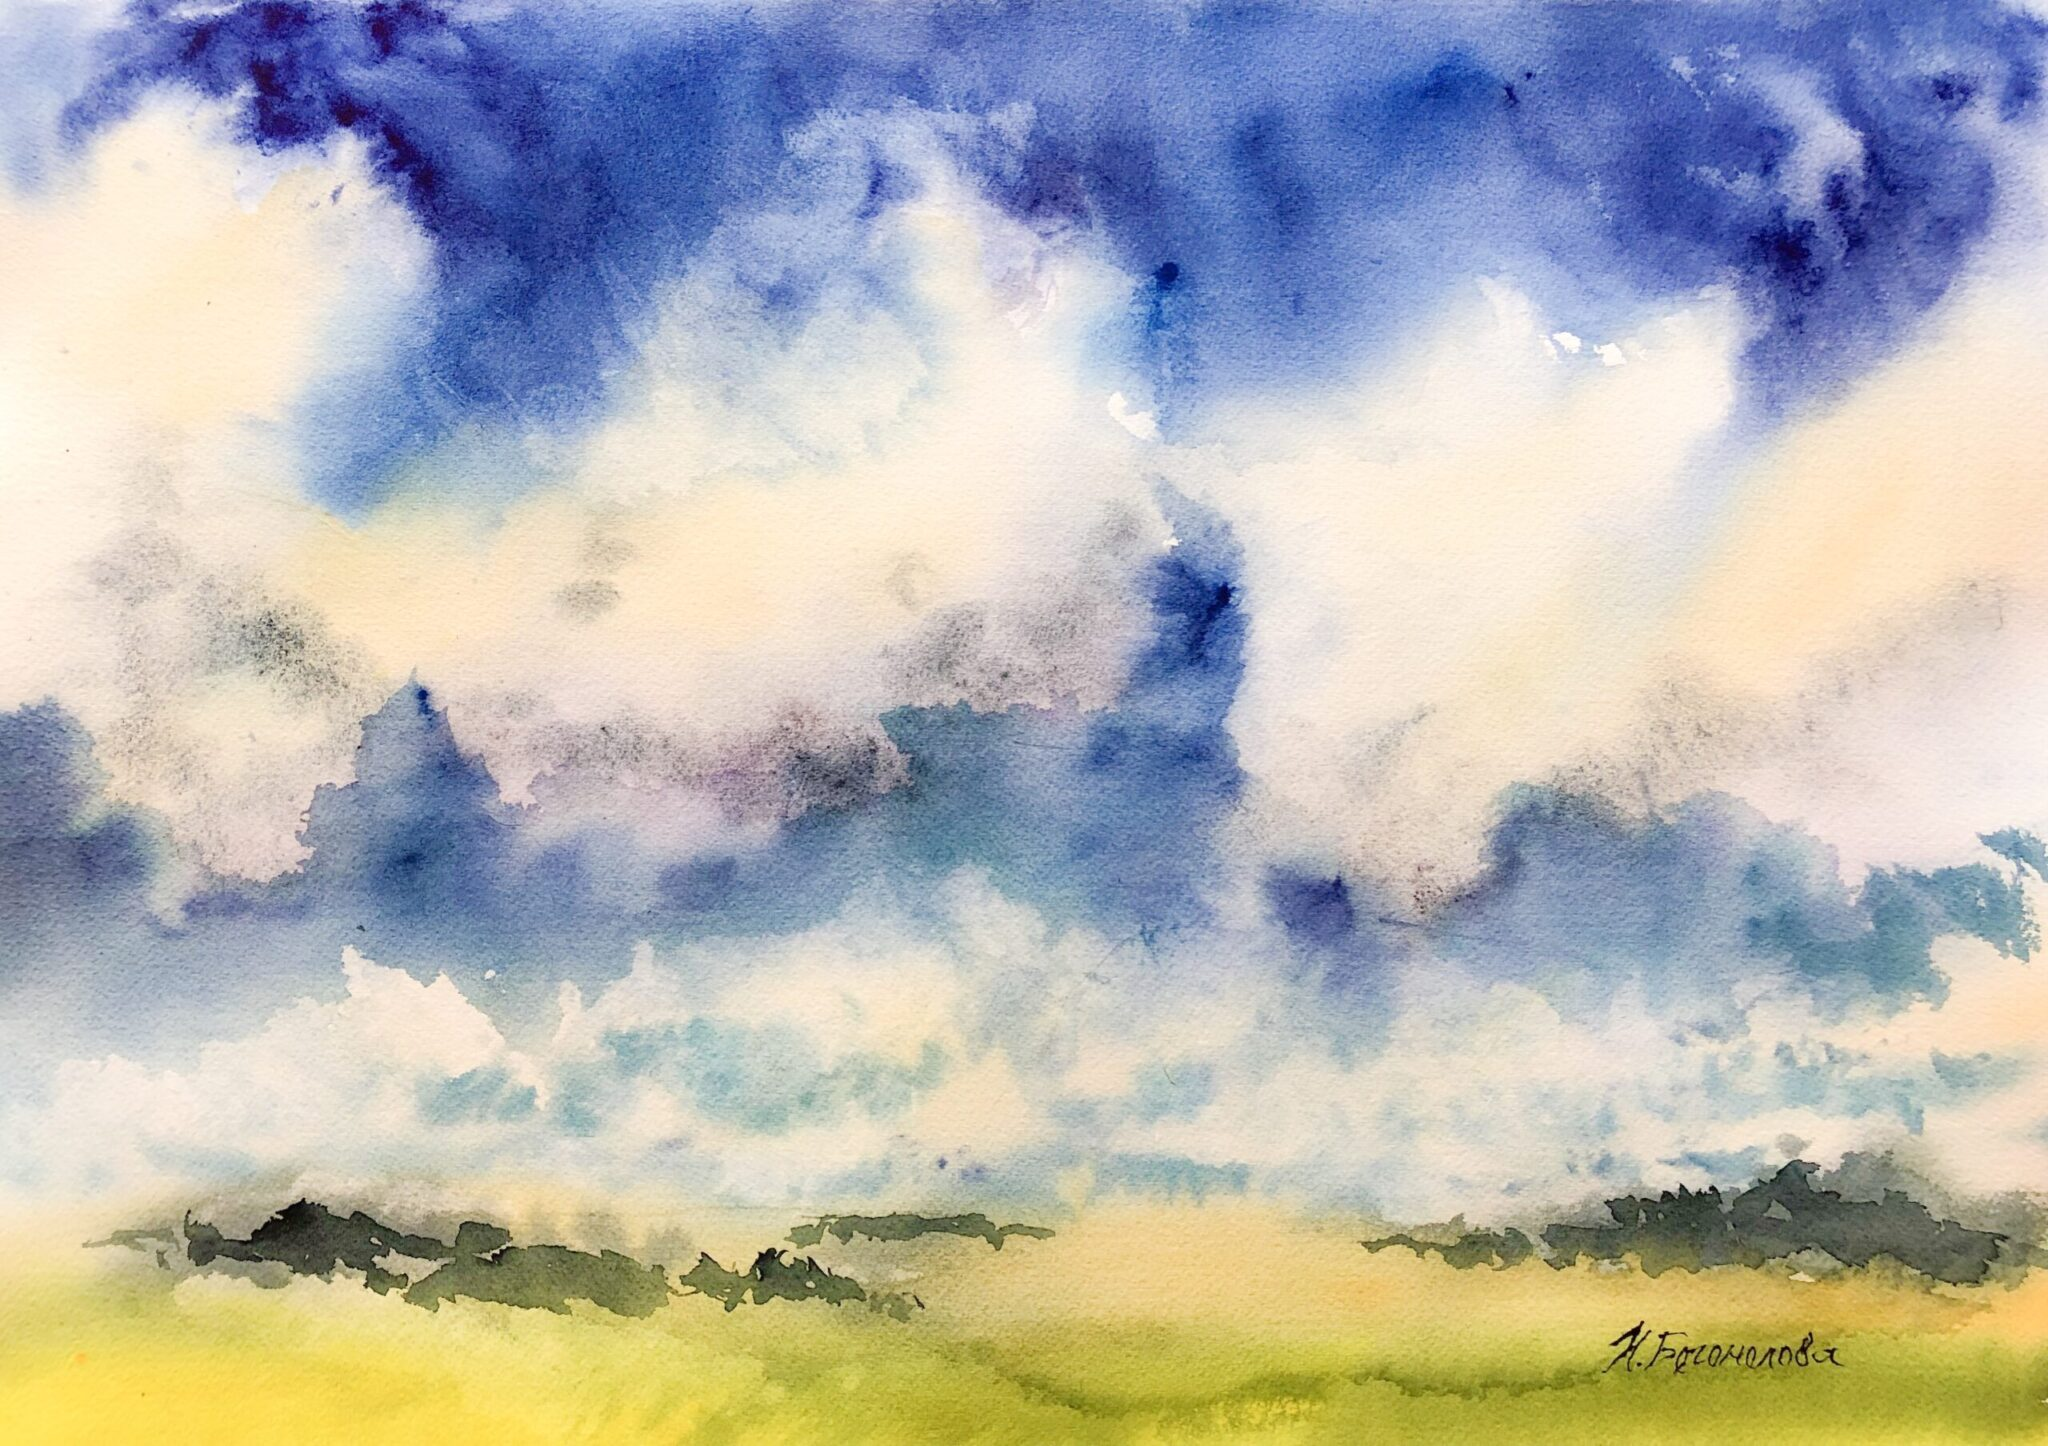 Sky watercolor painting. Fluffy clouds